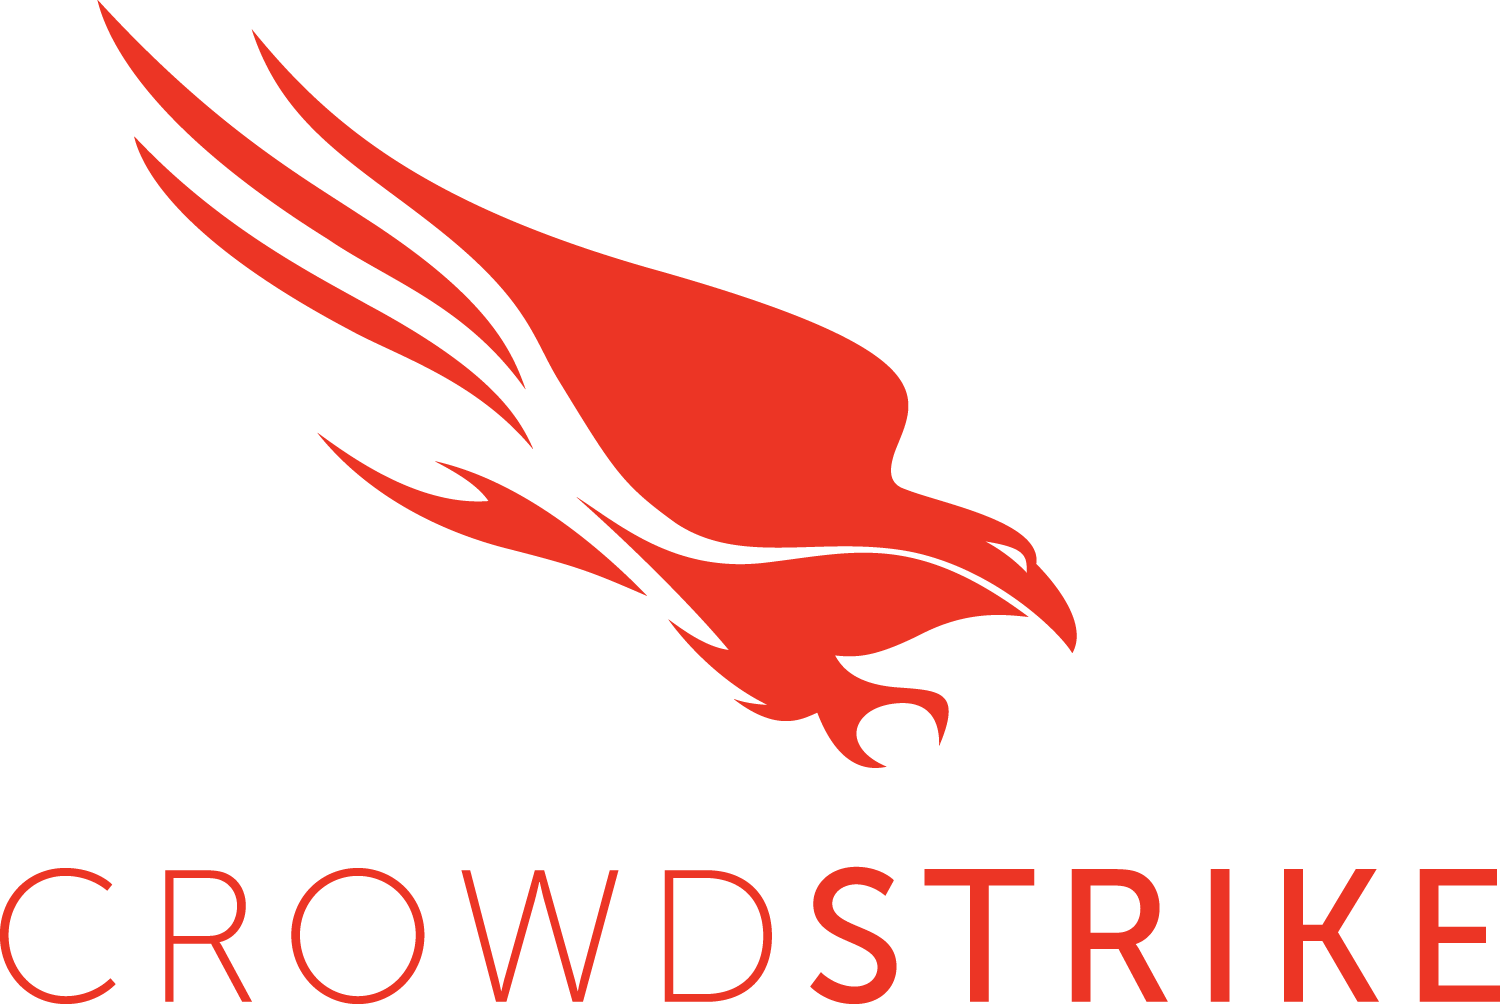 CrowdStrike_stacked-red.png